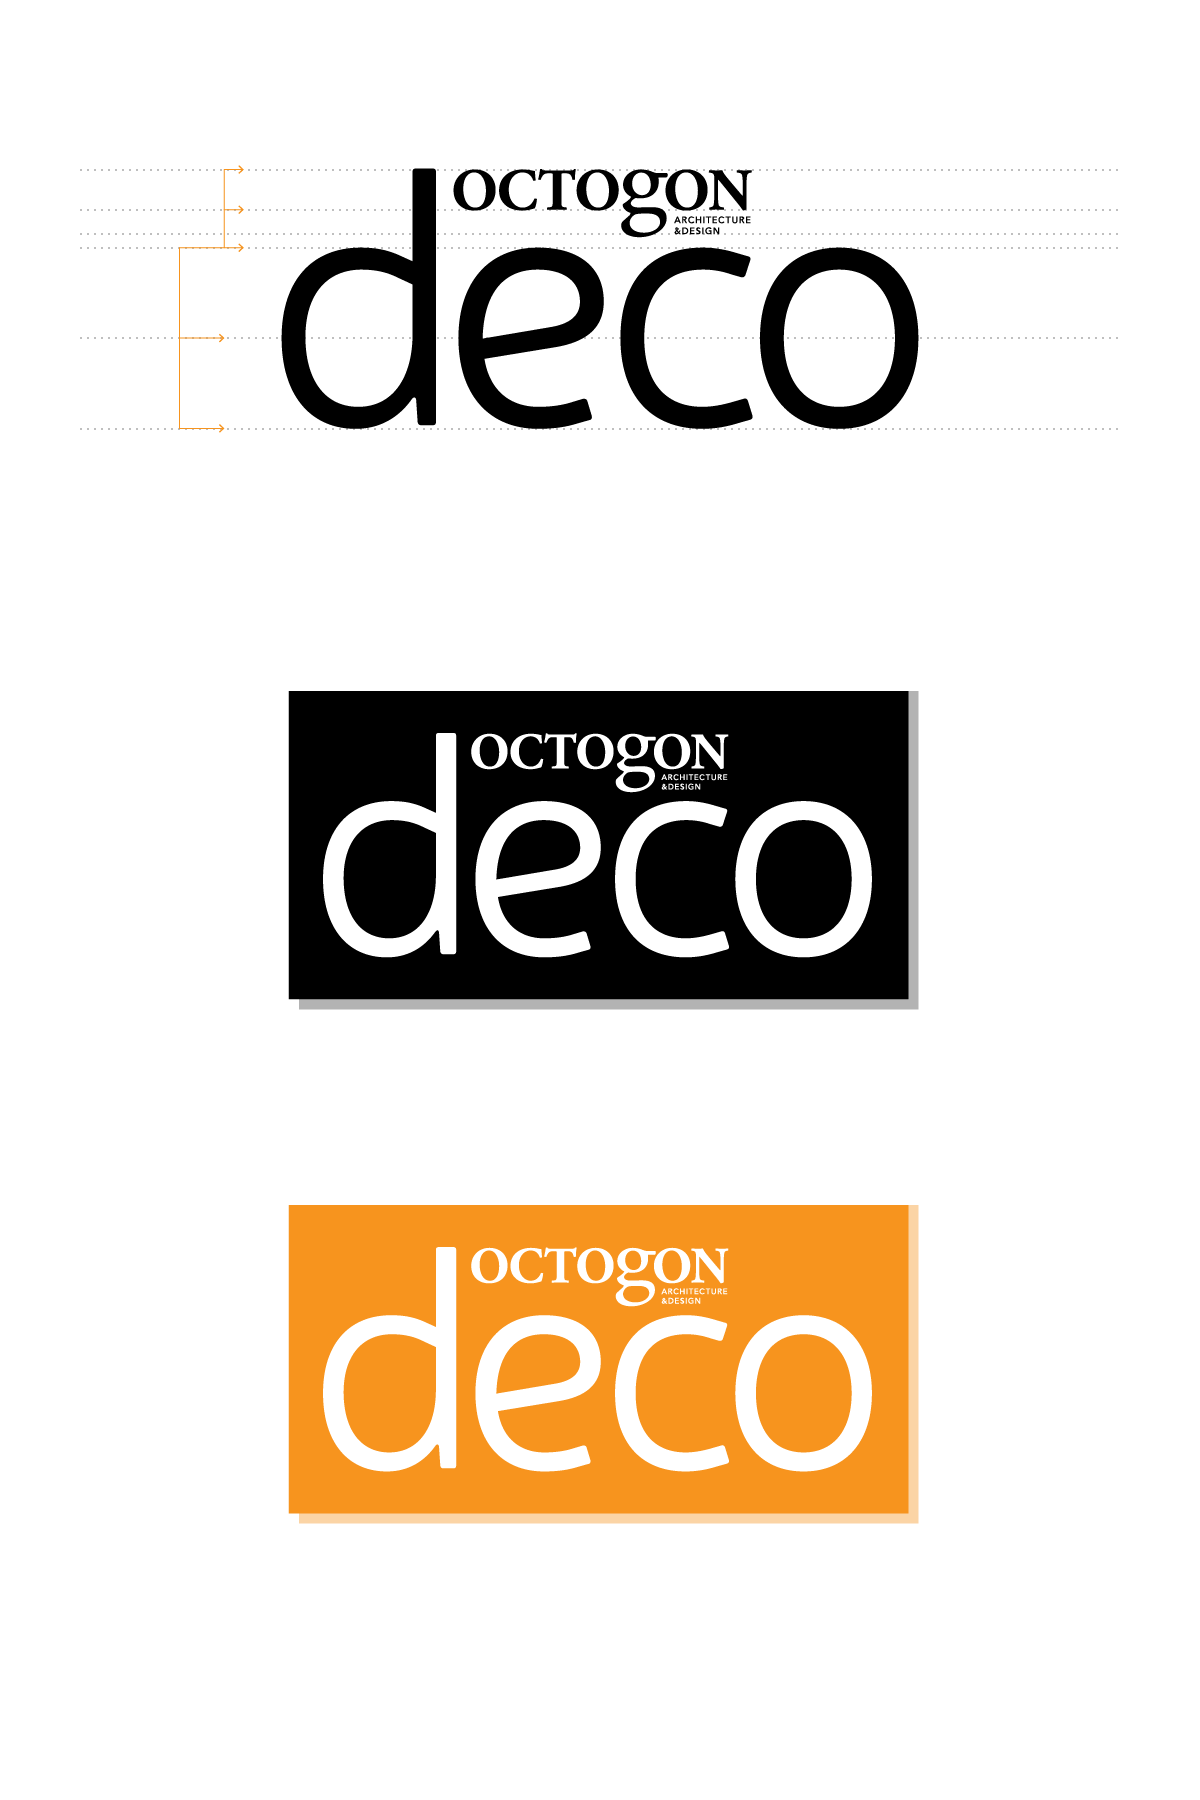 Octogon DECO magazin - 1 by Sólymos Ágnes Eszter